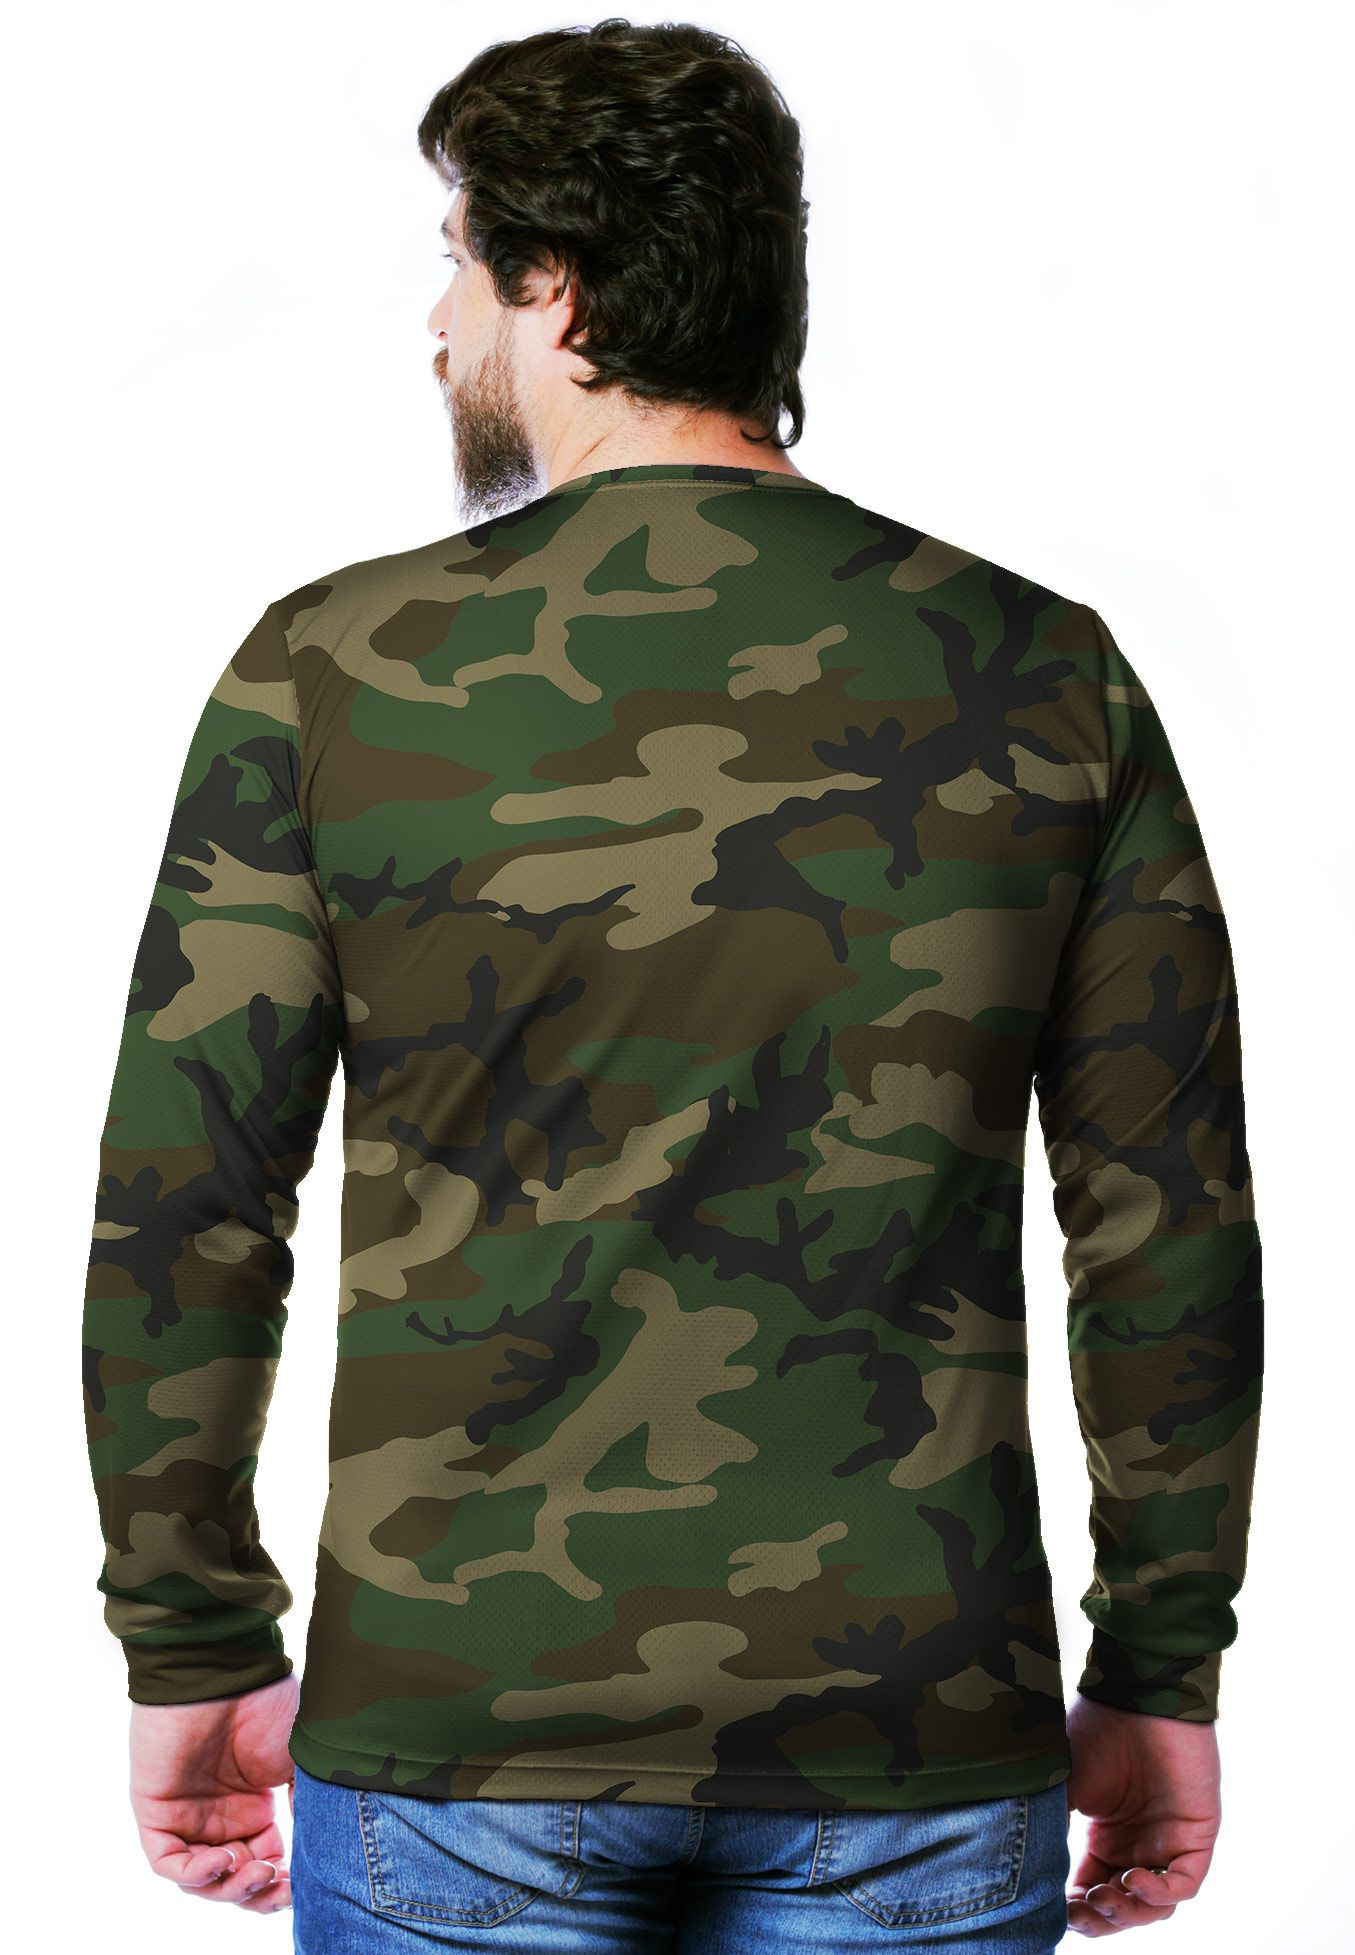 CAMISETA CAMUFLADA WOODLAND MANGA LONGA MASCULINA  - REAL HUNTER OUTDOORS